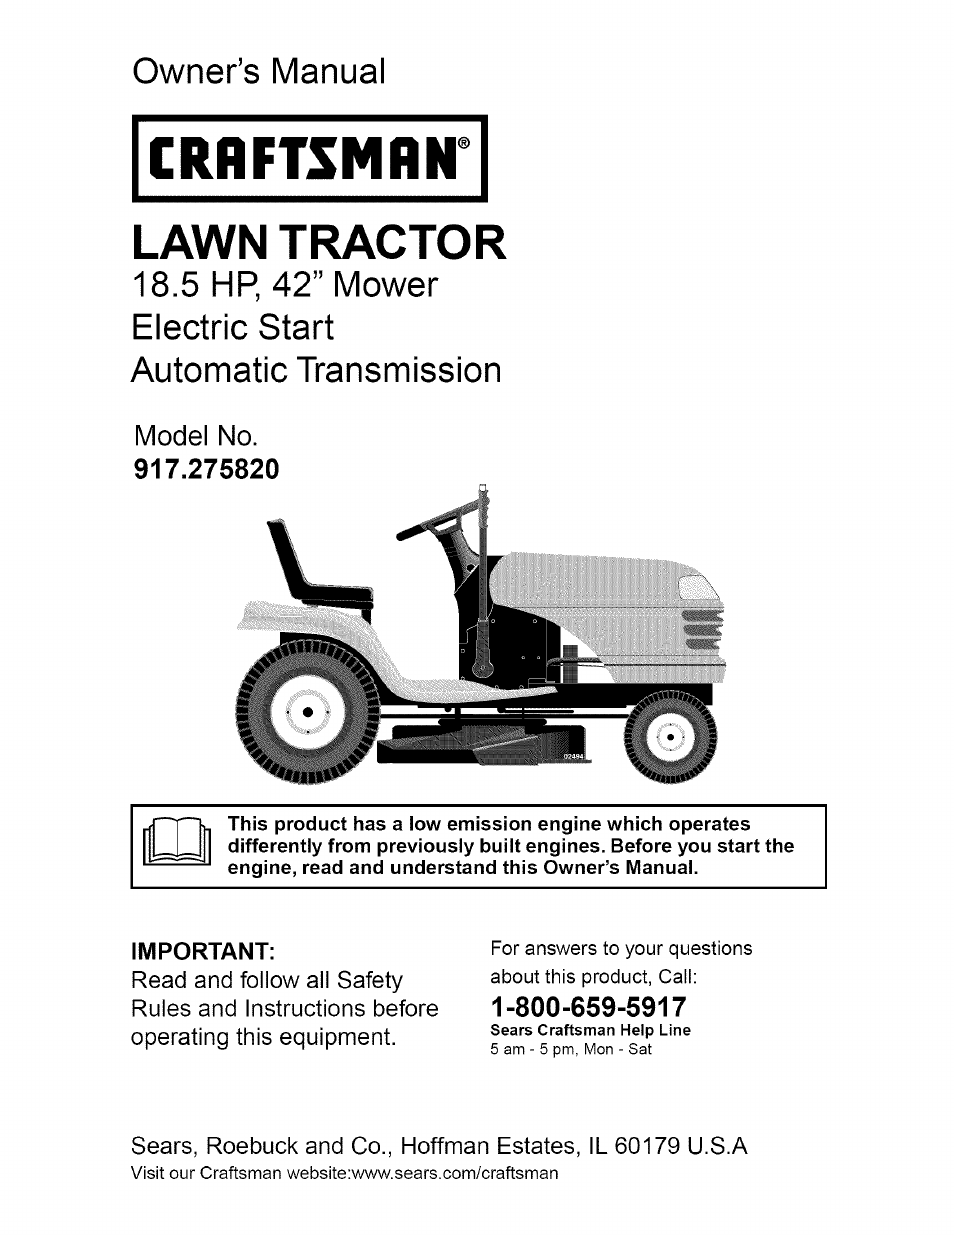 craftsman dlt 3000 917275820 page1?resize\\\\\\\\\\\\\\\\\\\\\\\=665%2C861 owners manual craftsman ys 4500 wiring diagrams wiring diagrams  at creativeand.co